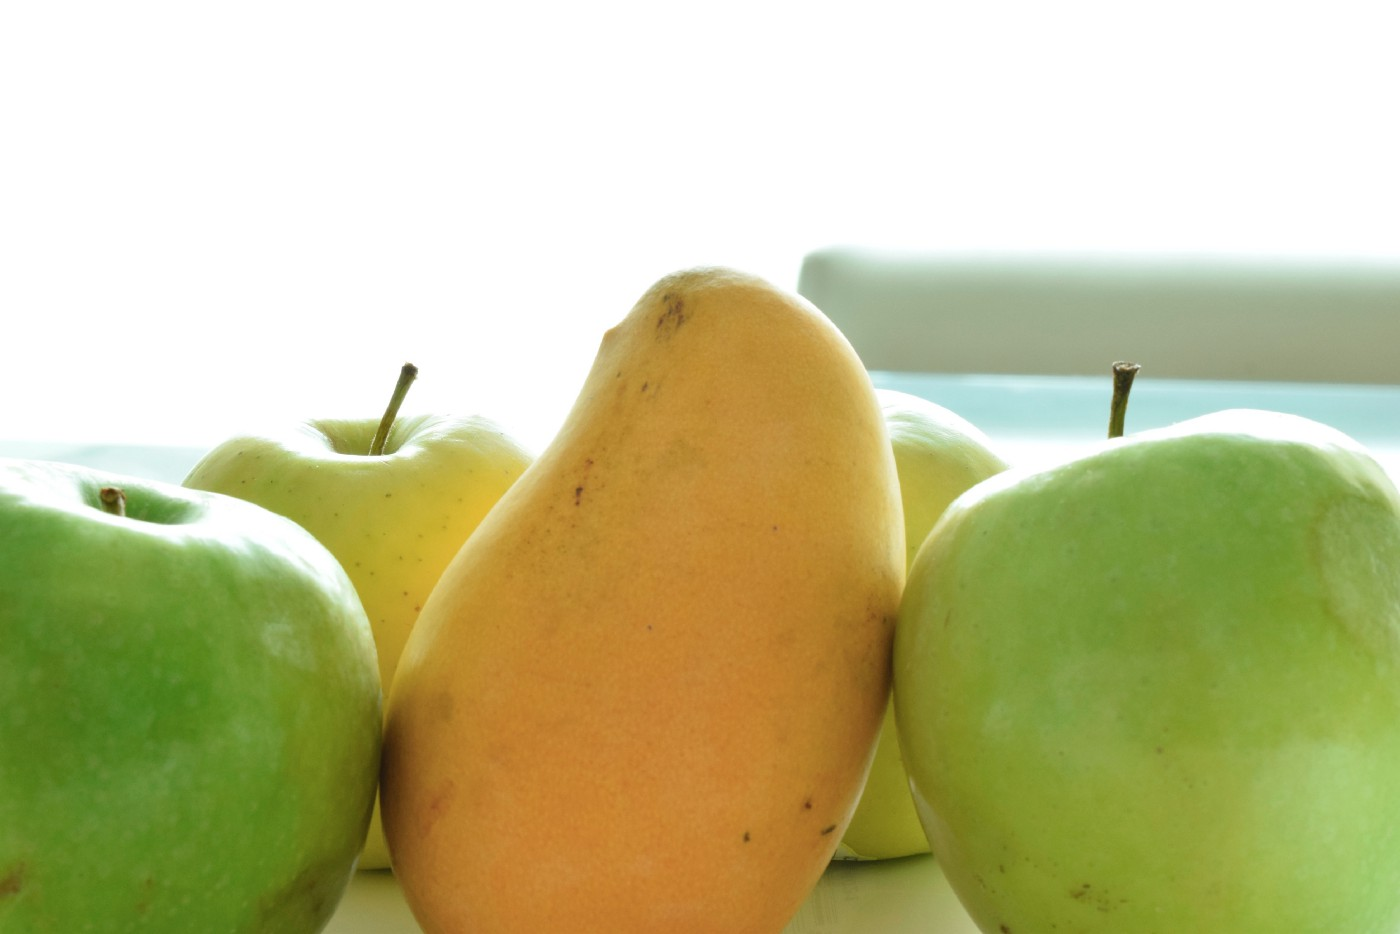 A mango stands tall amongst a group of green apples.